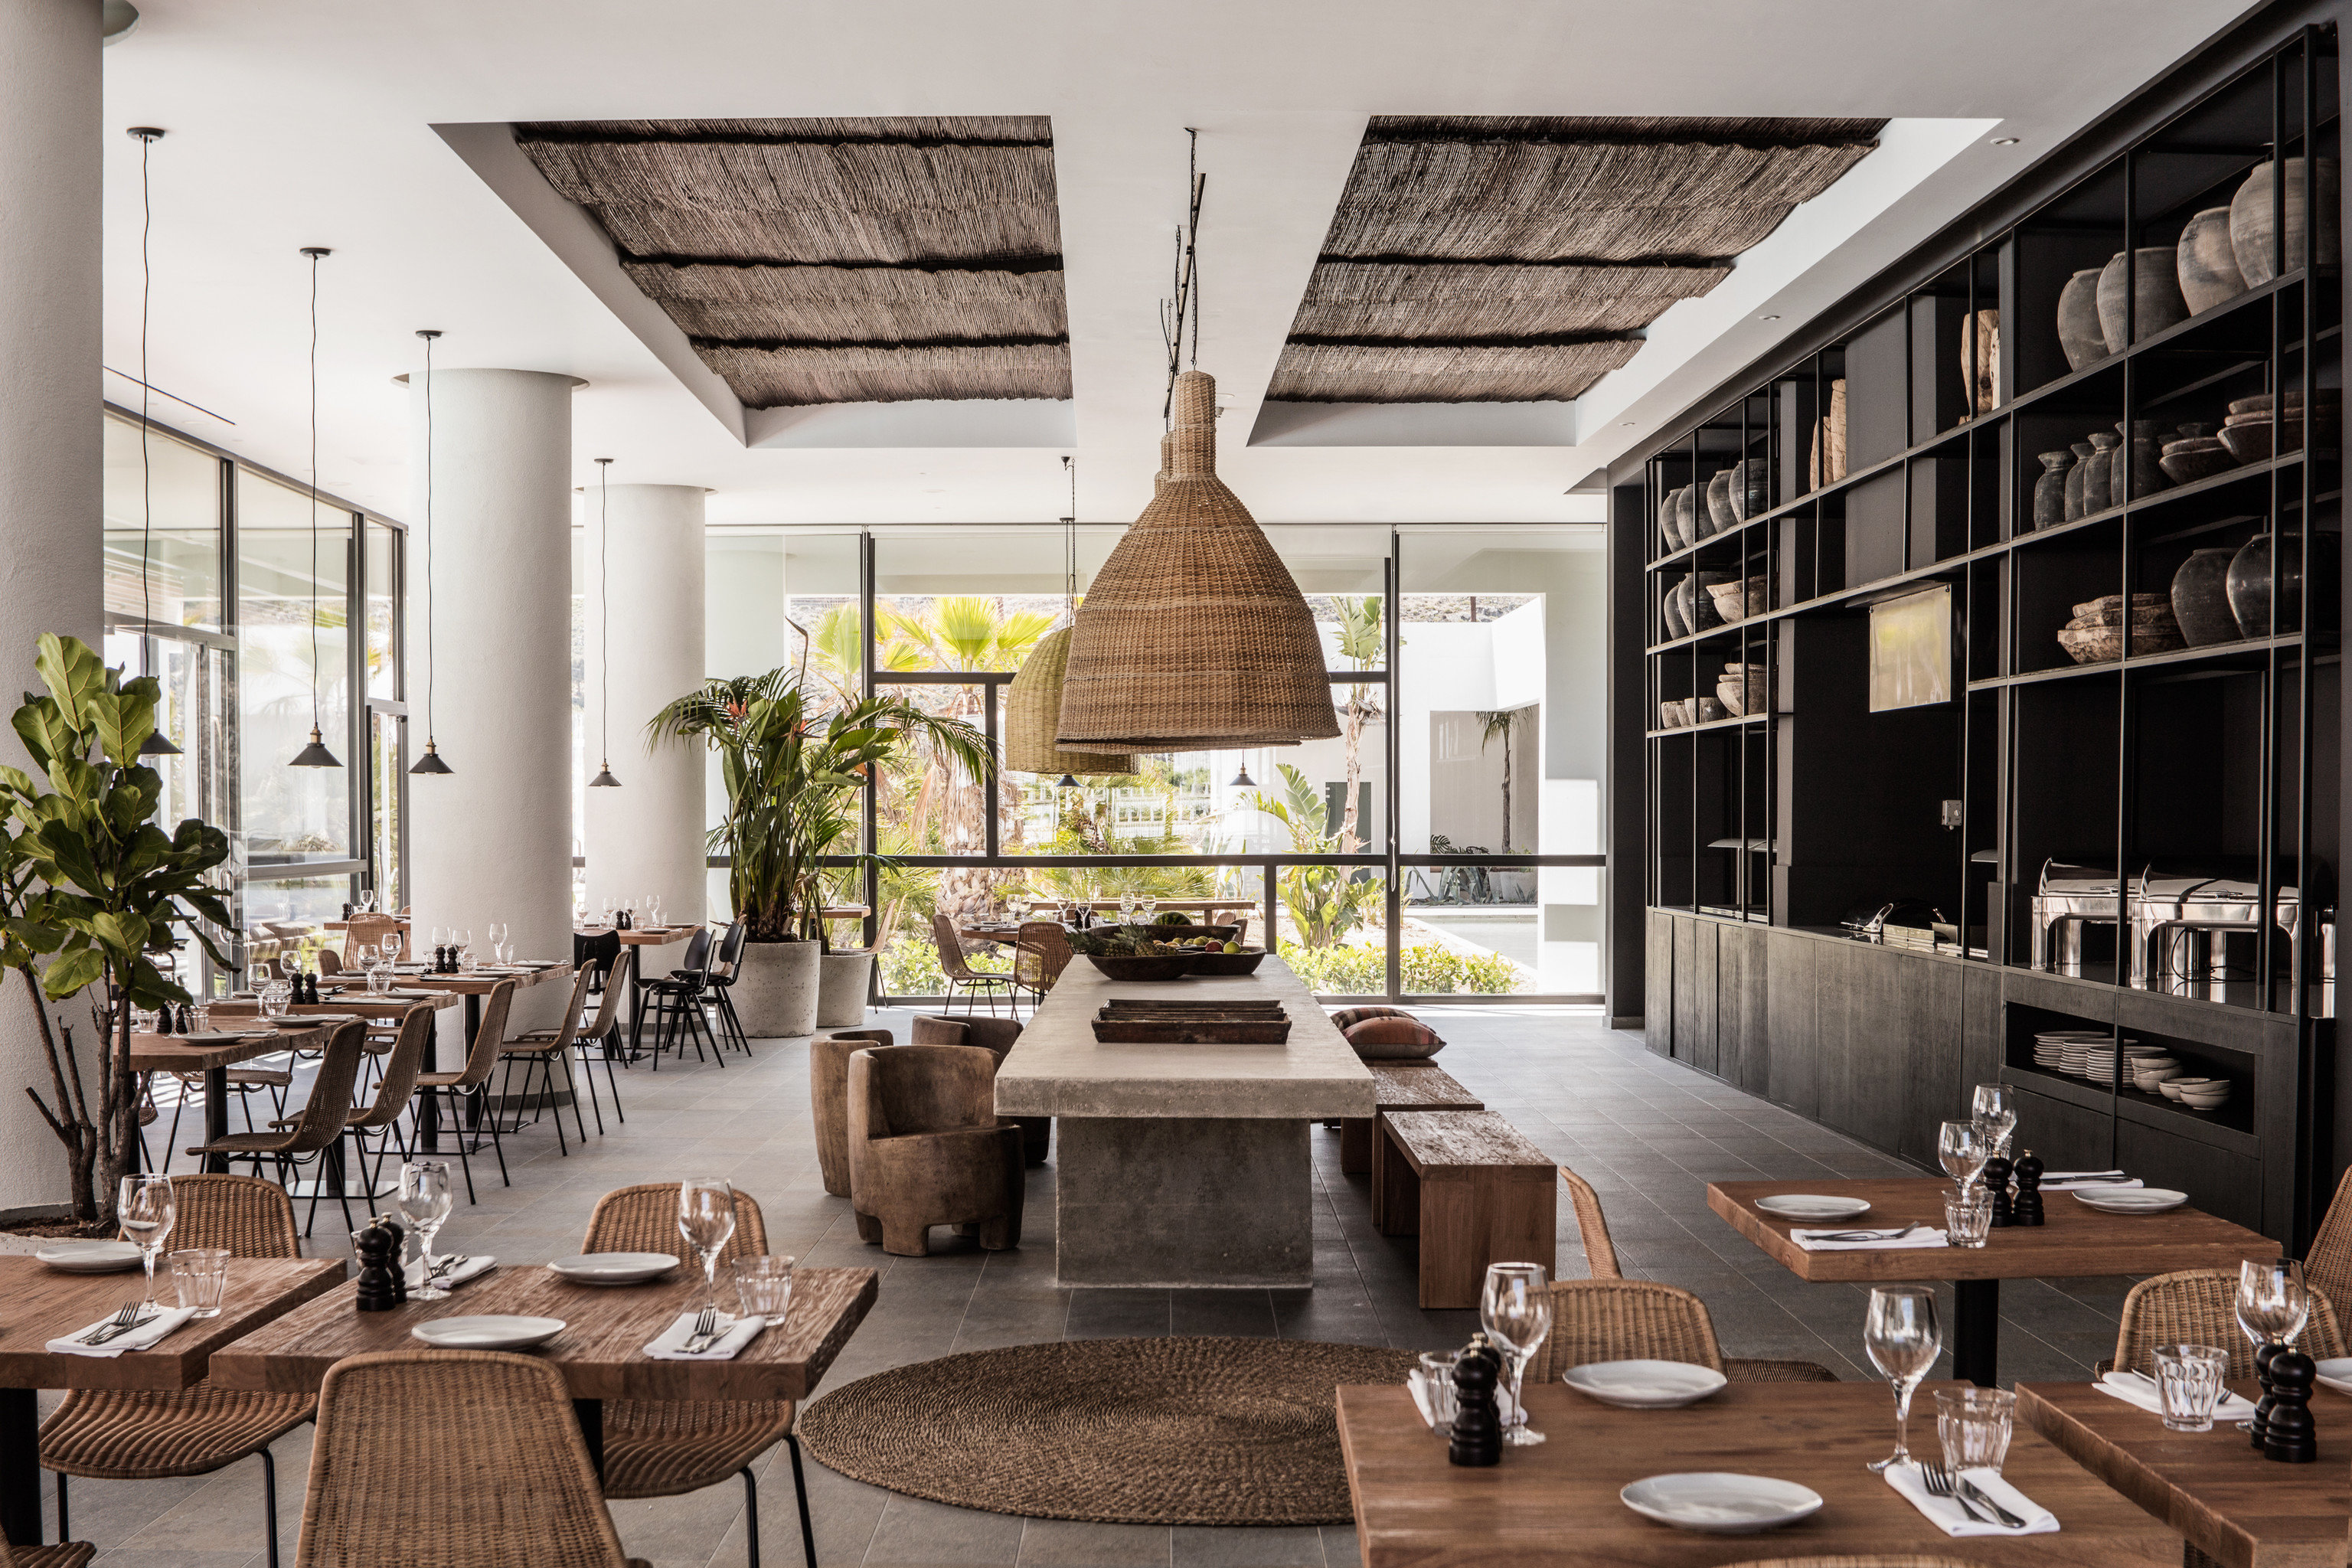 Boutique Hotels Hotels indoor table room Living living room dining room property home estate condominium interior design real estate wood Dining Design loft farmhouse window covering furniture area